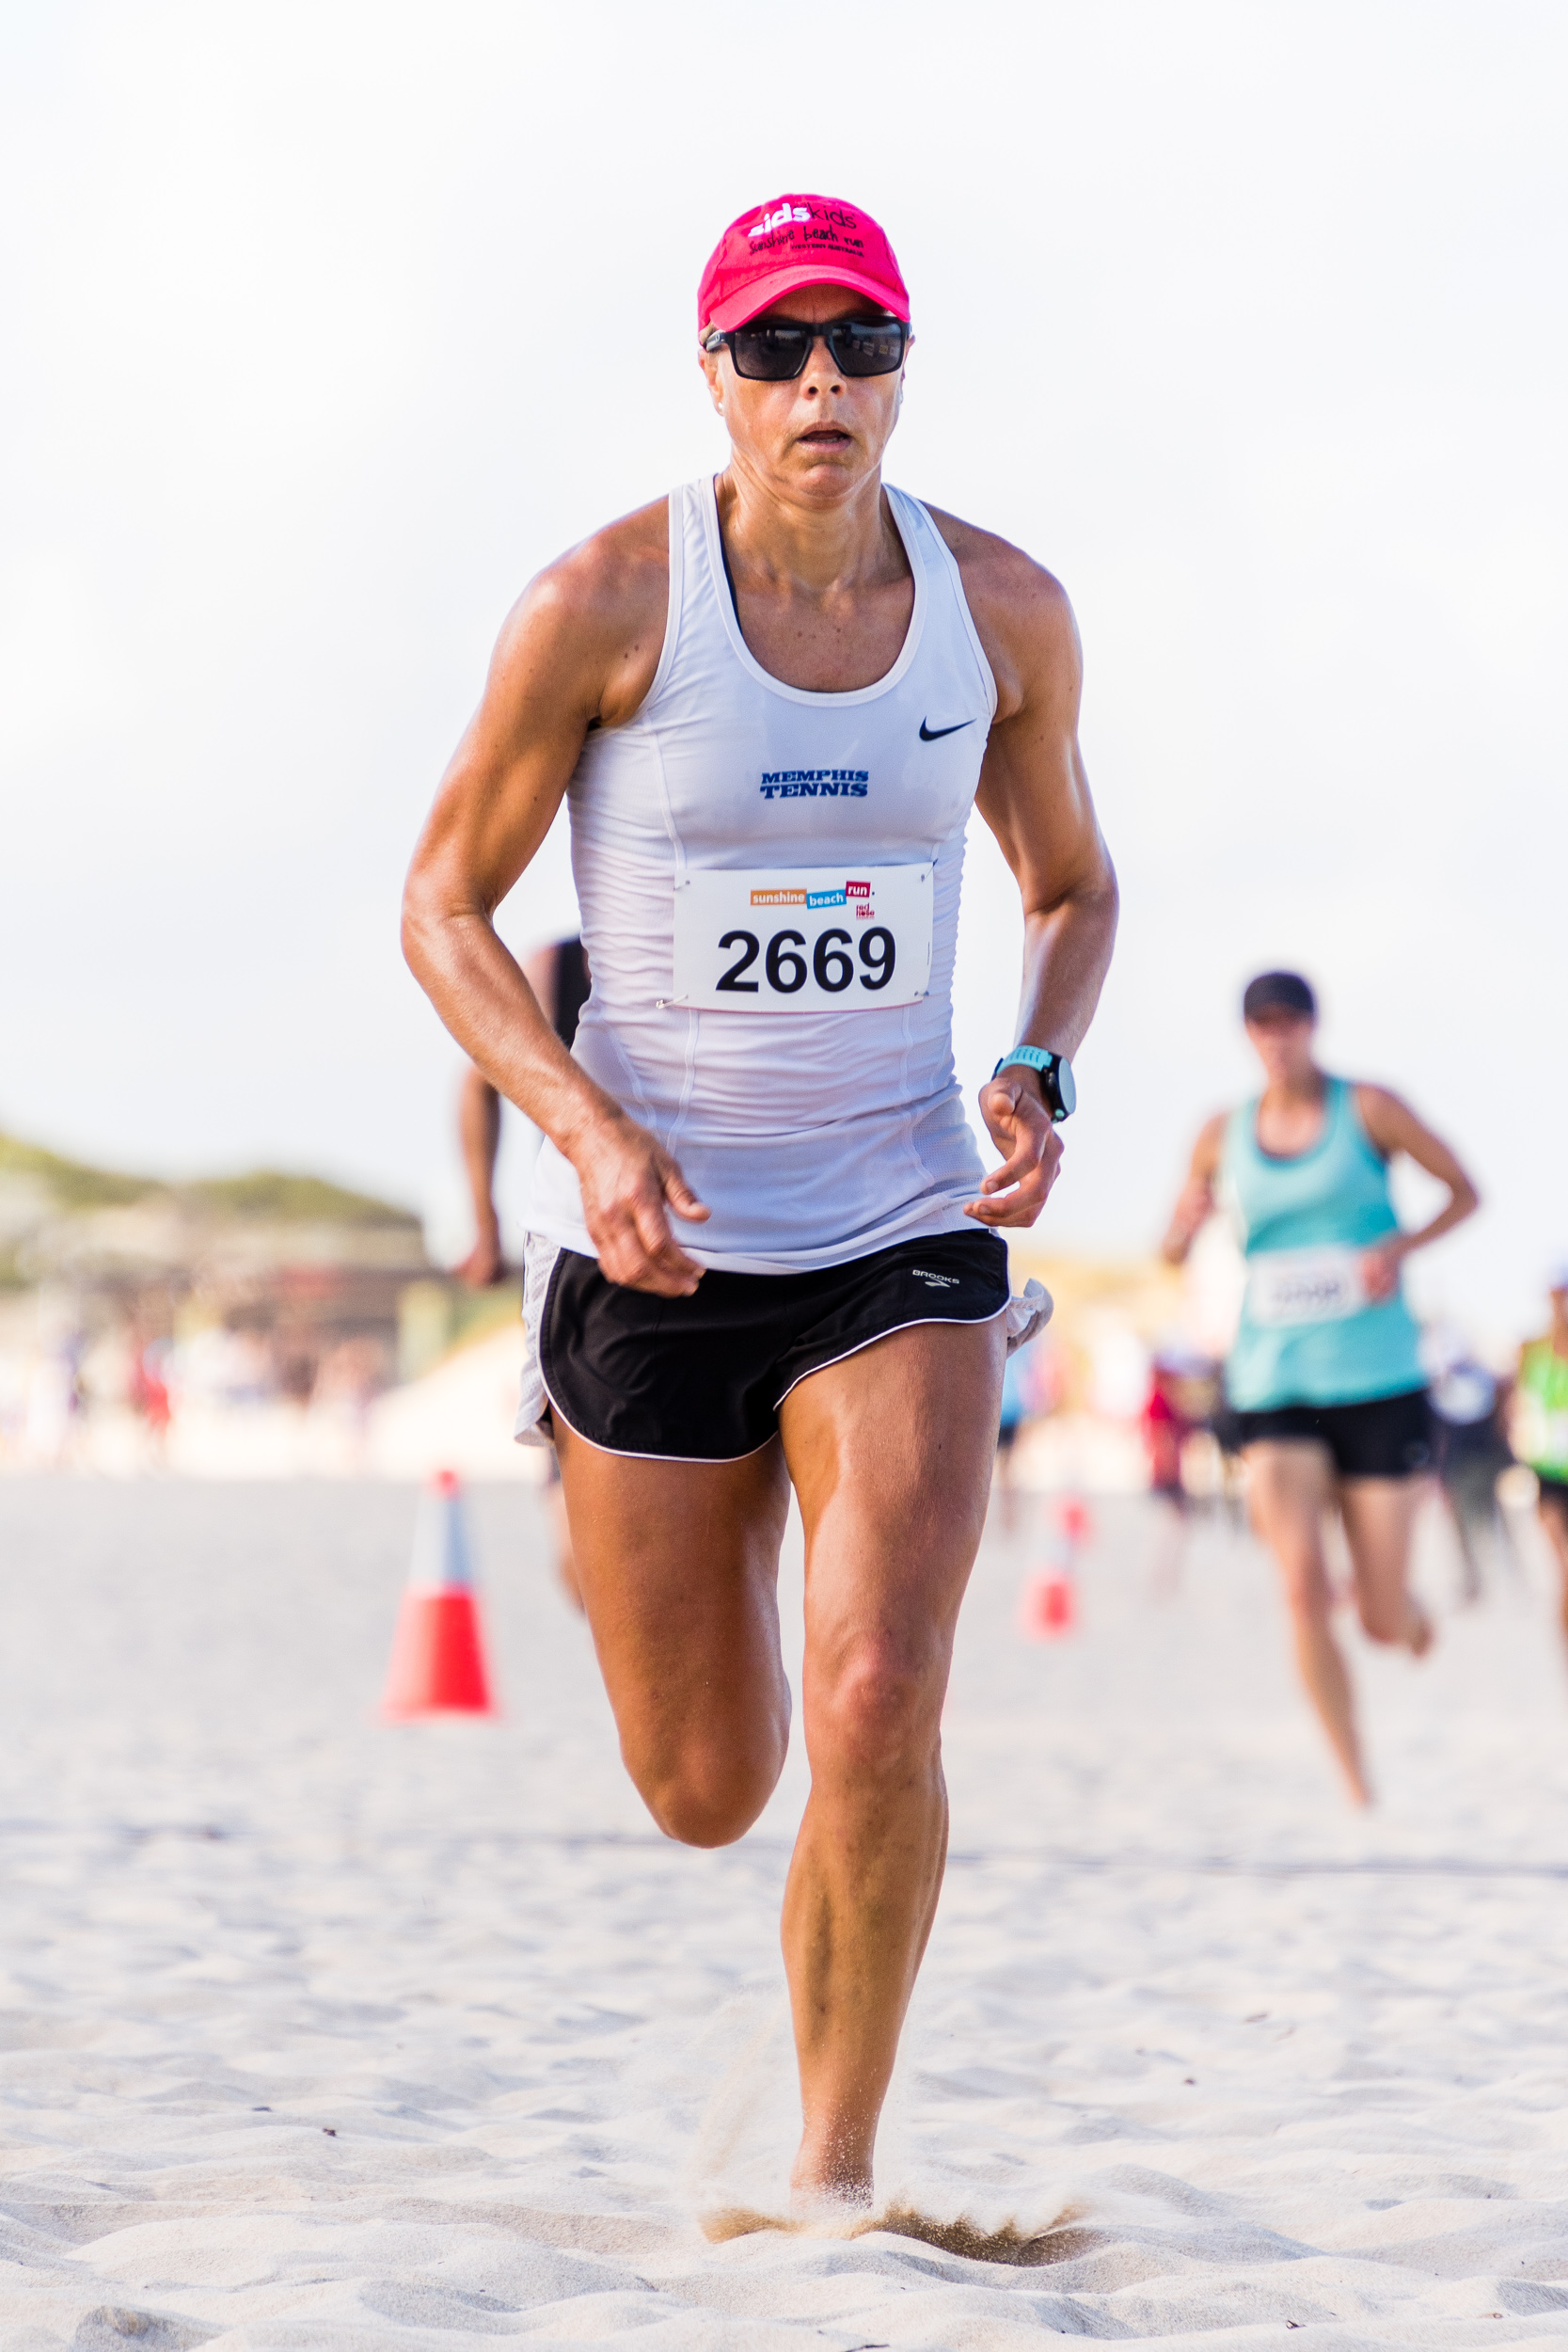 Spyrides_Kyle_Sunshine_Beach_Run_18.2.2018_DSC9355.jpg